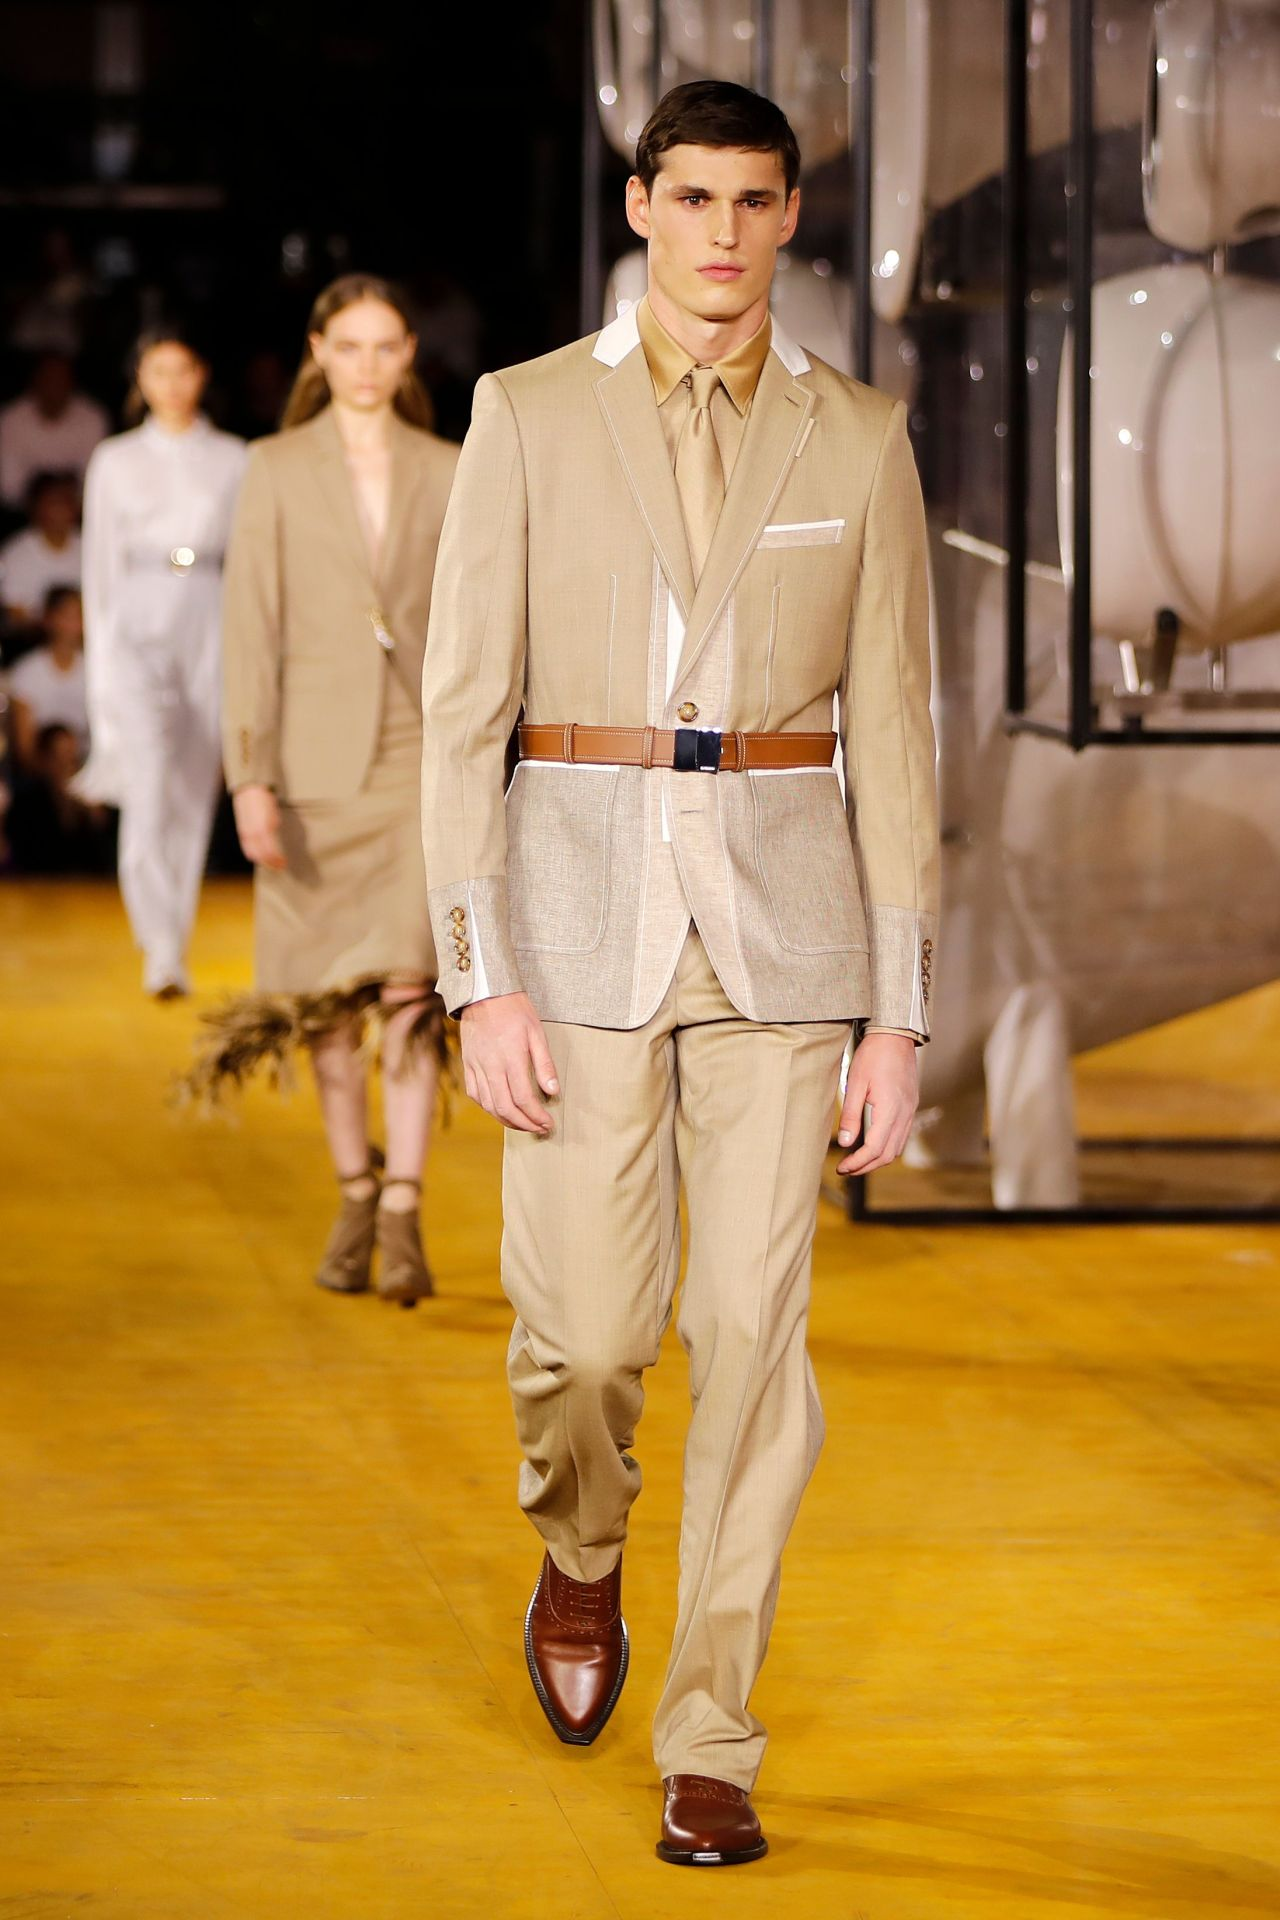 Burberry ready-to-wear spring/summer 2020. Image credit: Tolga Akmen/AFP/Getty Images